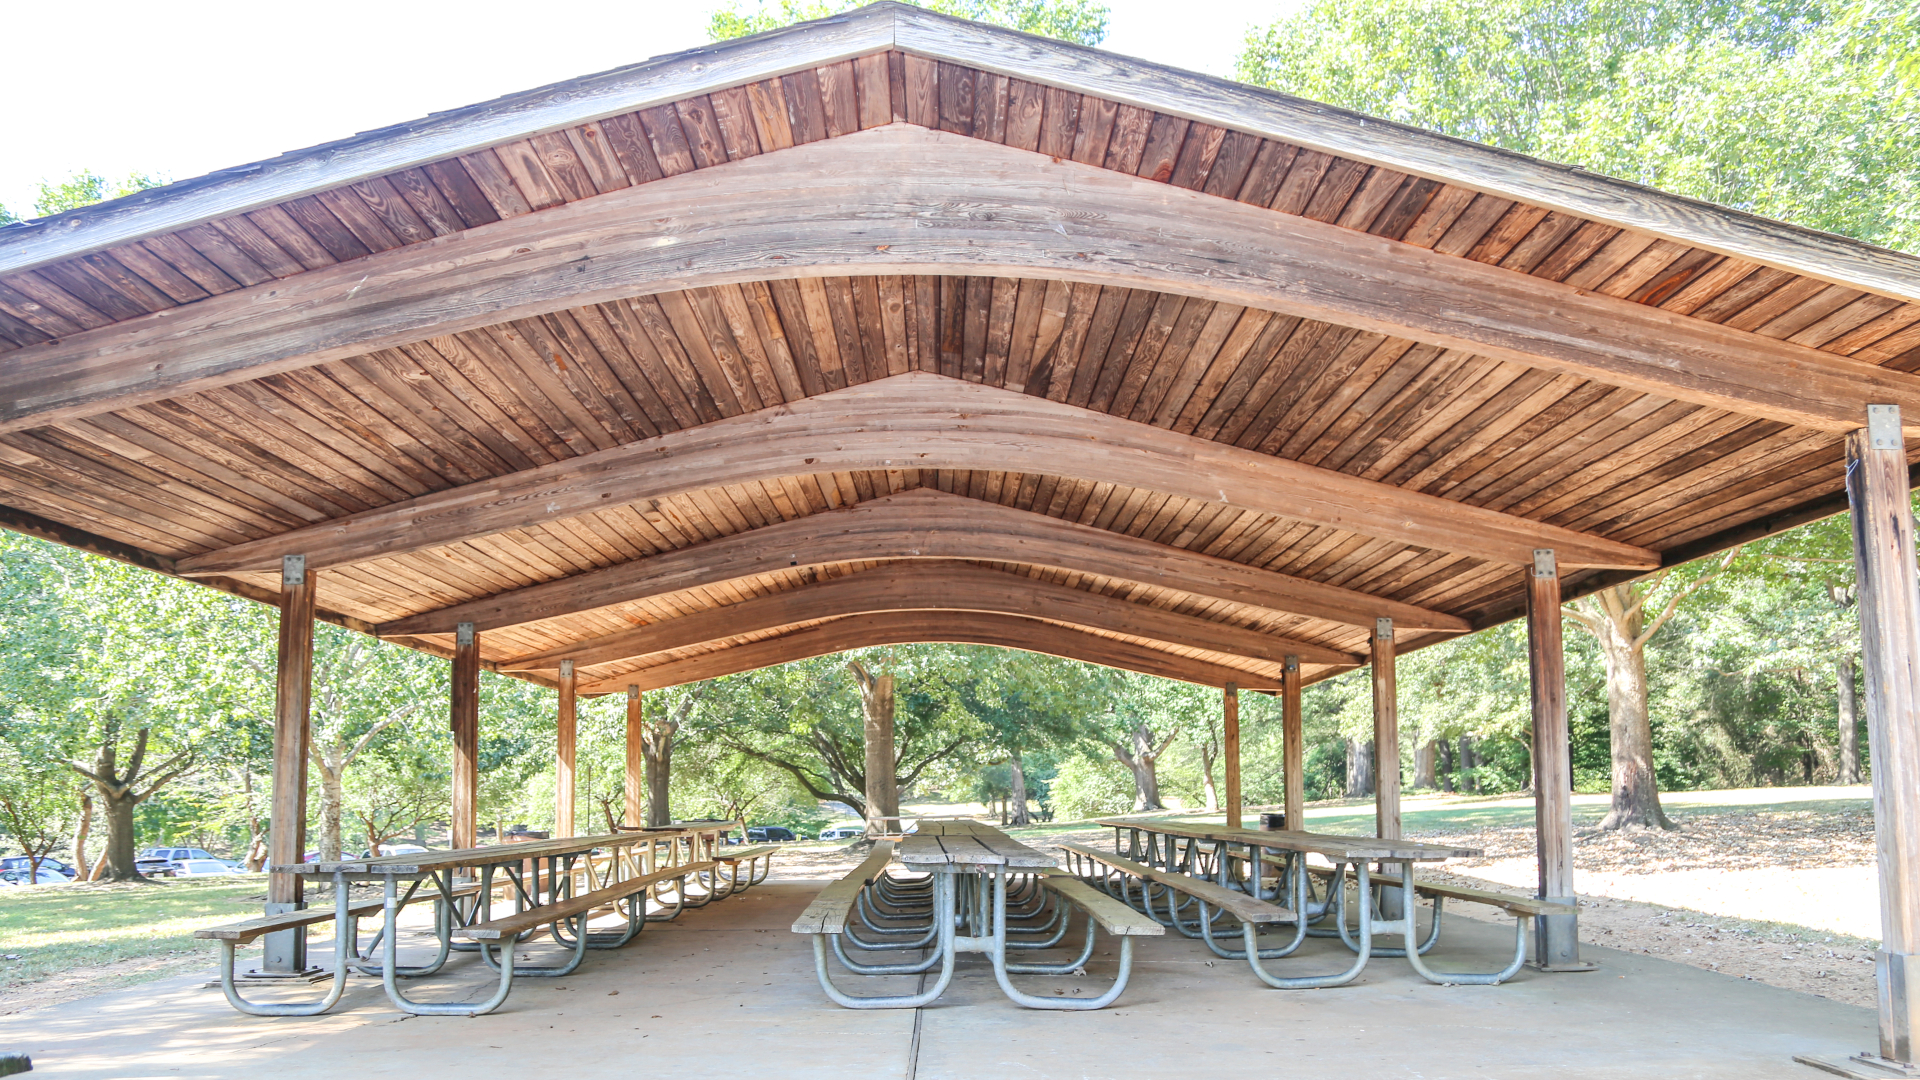 View of shelter 1 at Pullen Park with covered tables